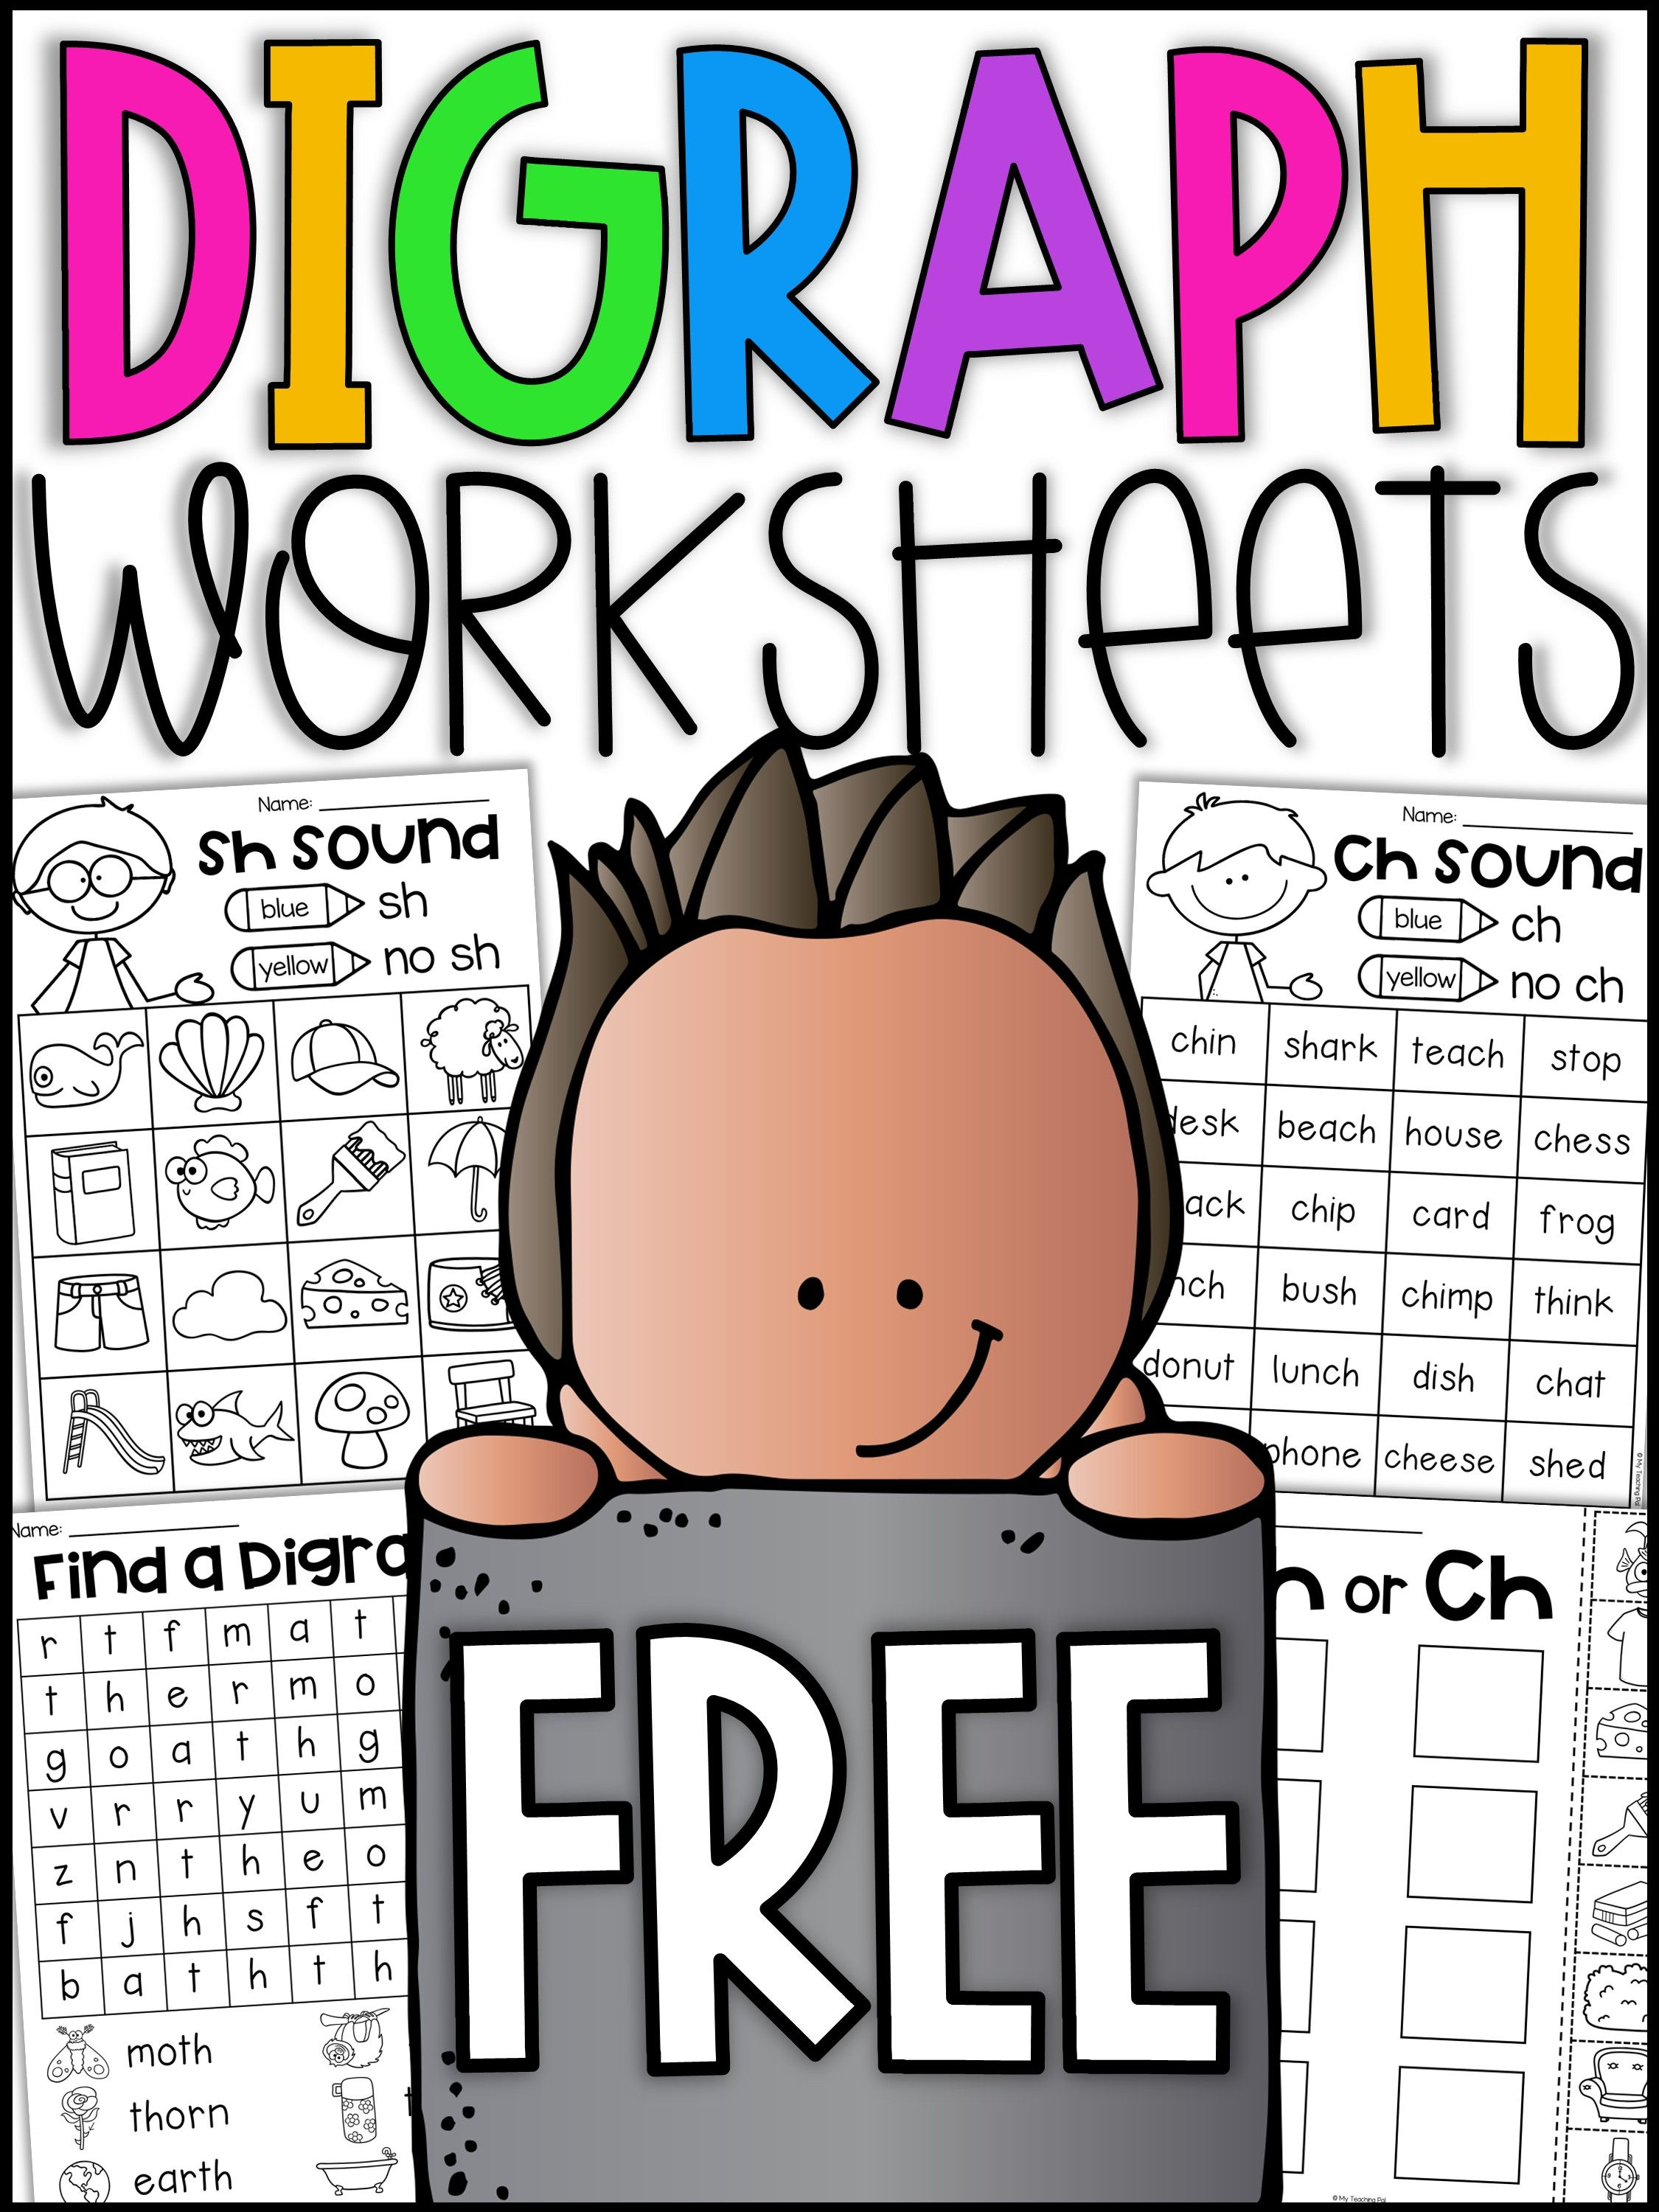 12 Best Digraph Worksheets Images On Best Worksheets